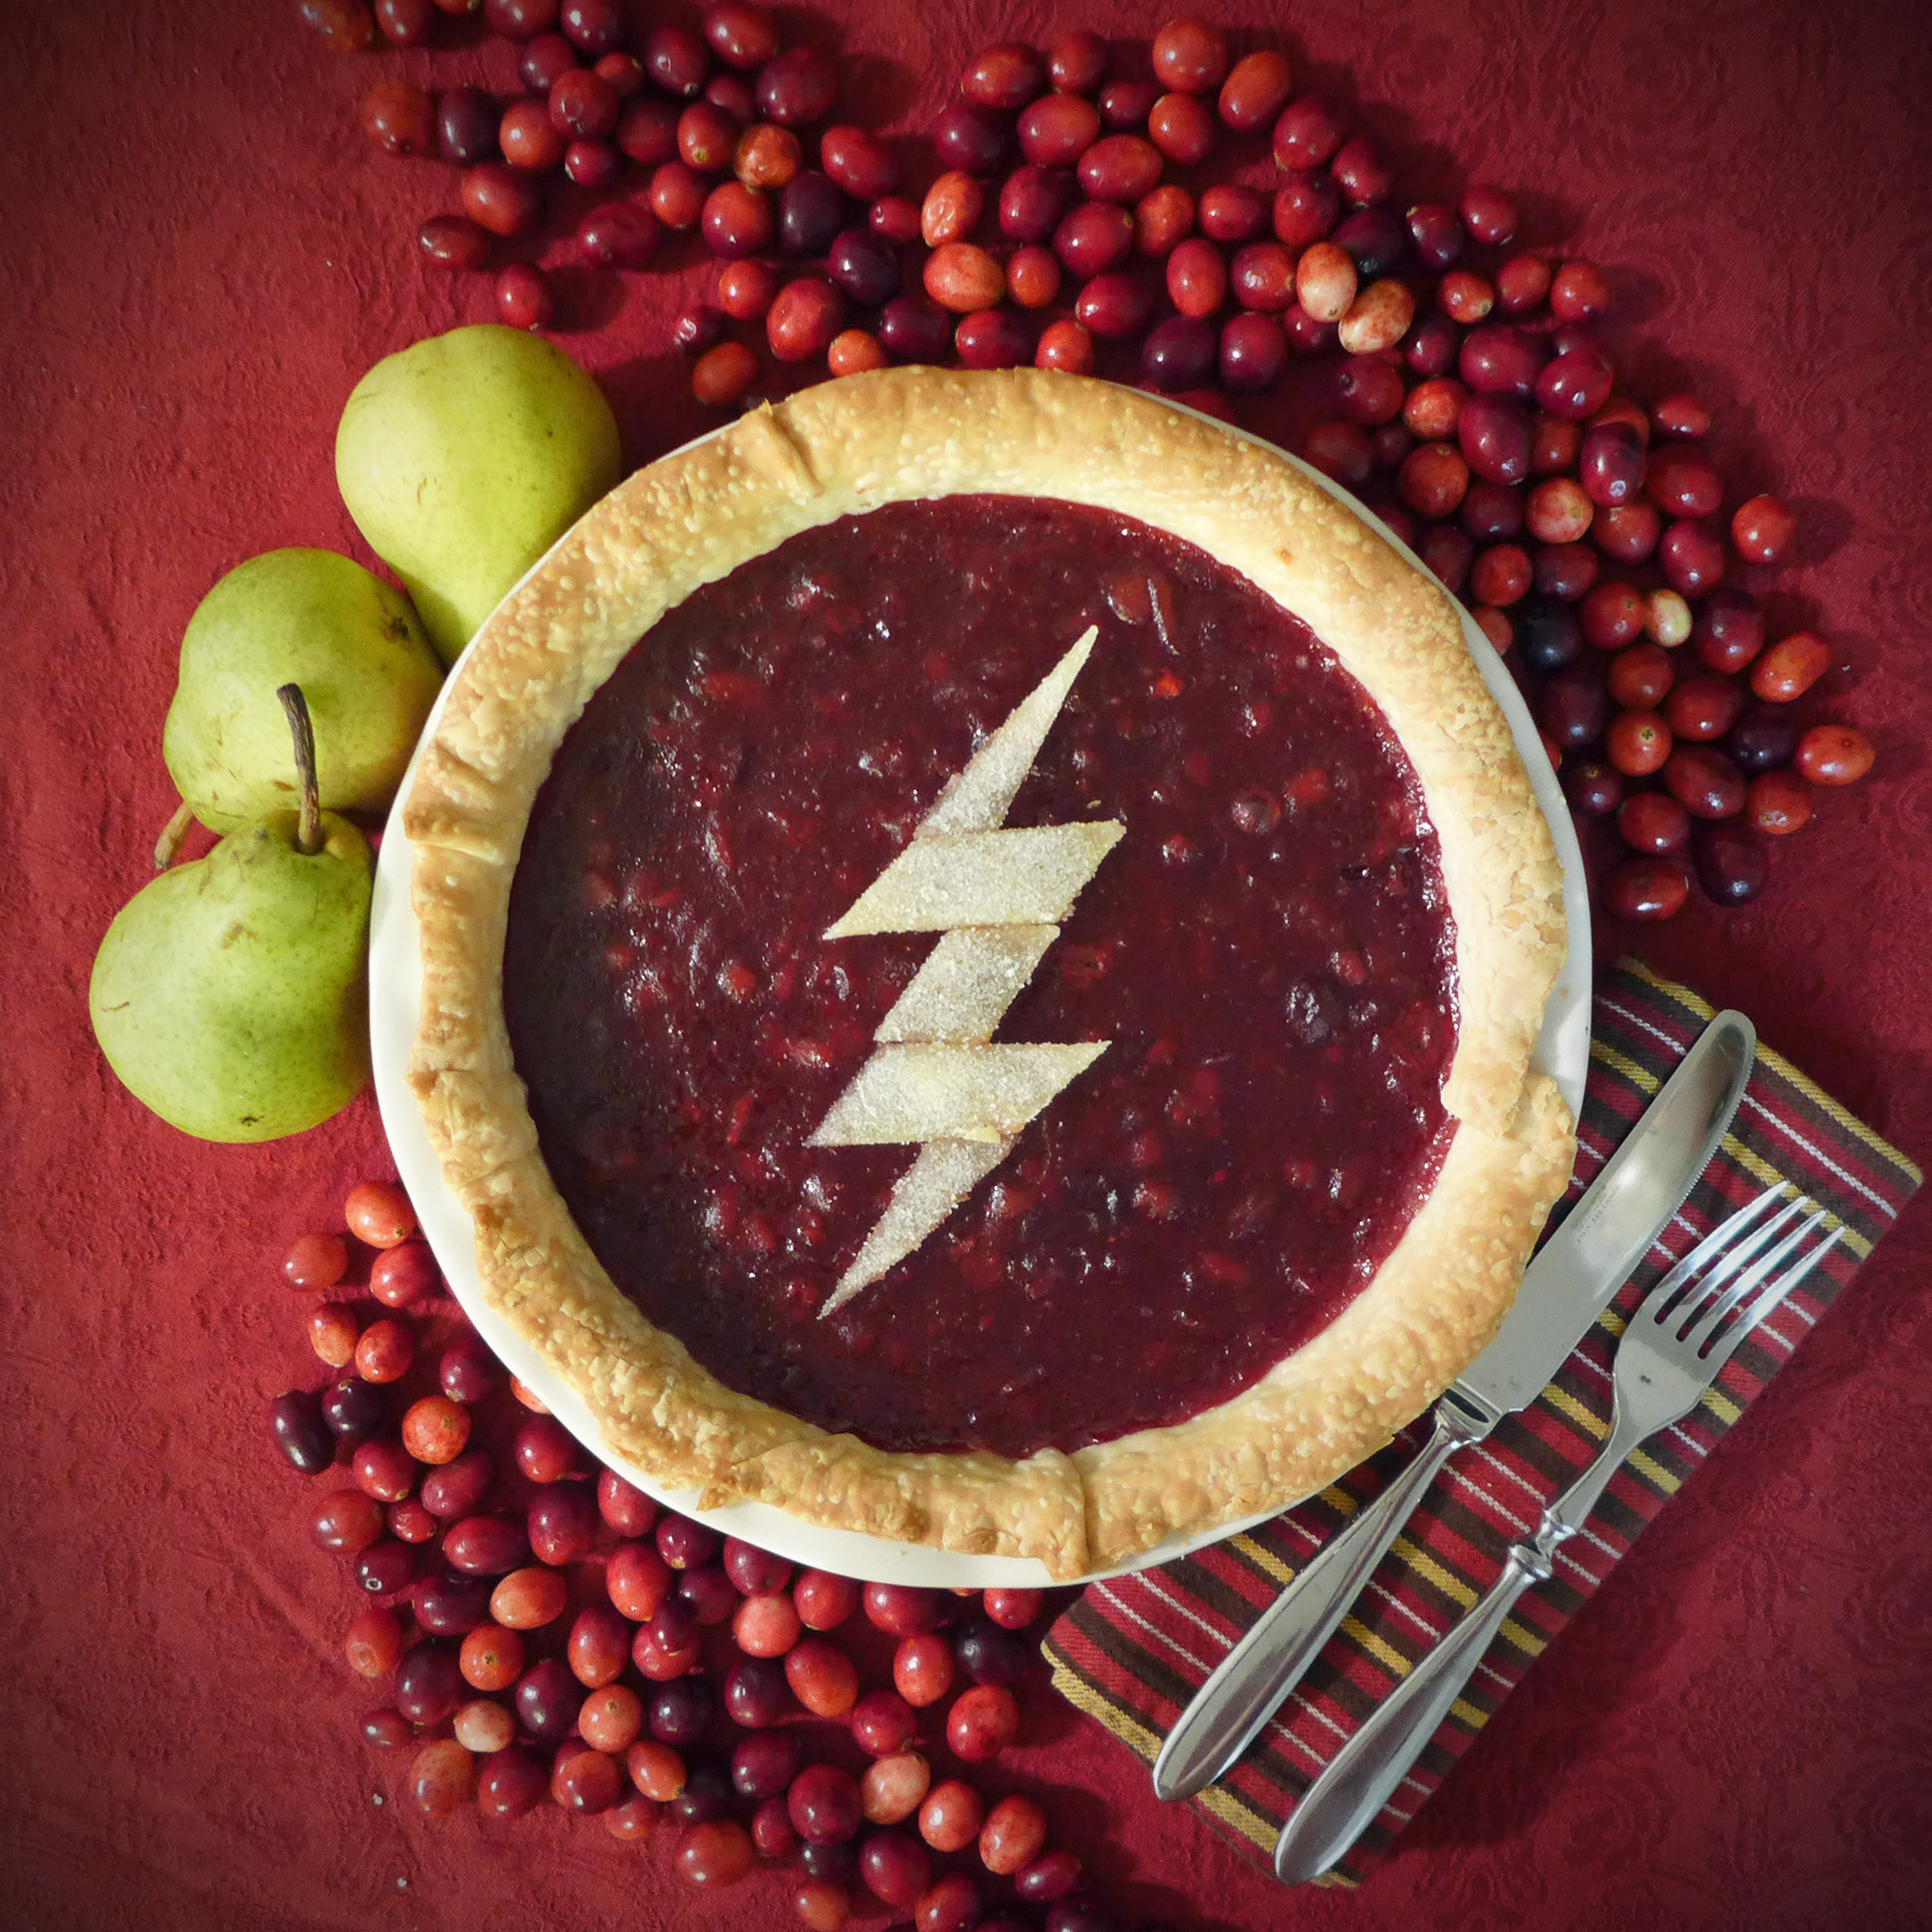 CW The Flash Cranberry, Pear and Crystallized Ginger Pie by Kitchen Overlord